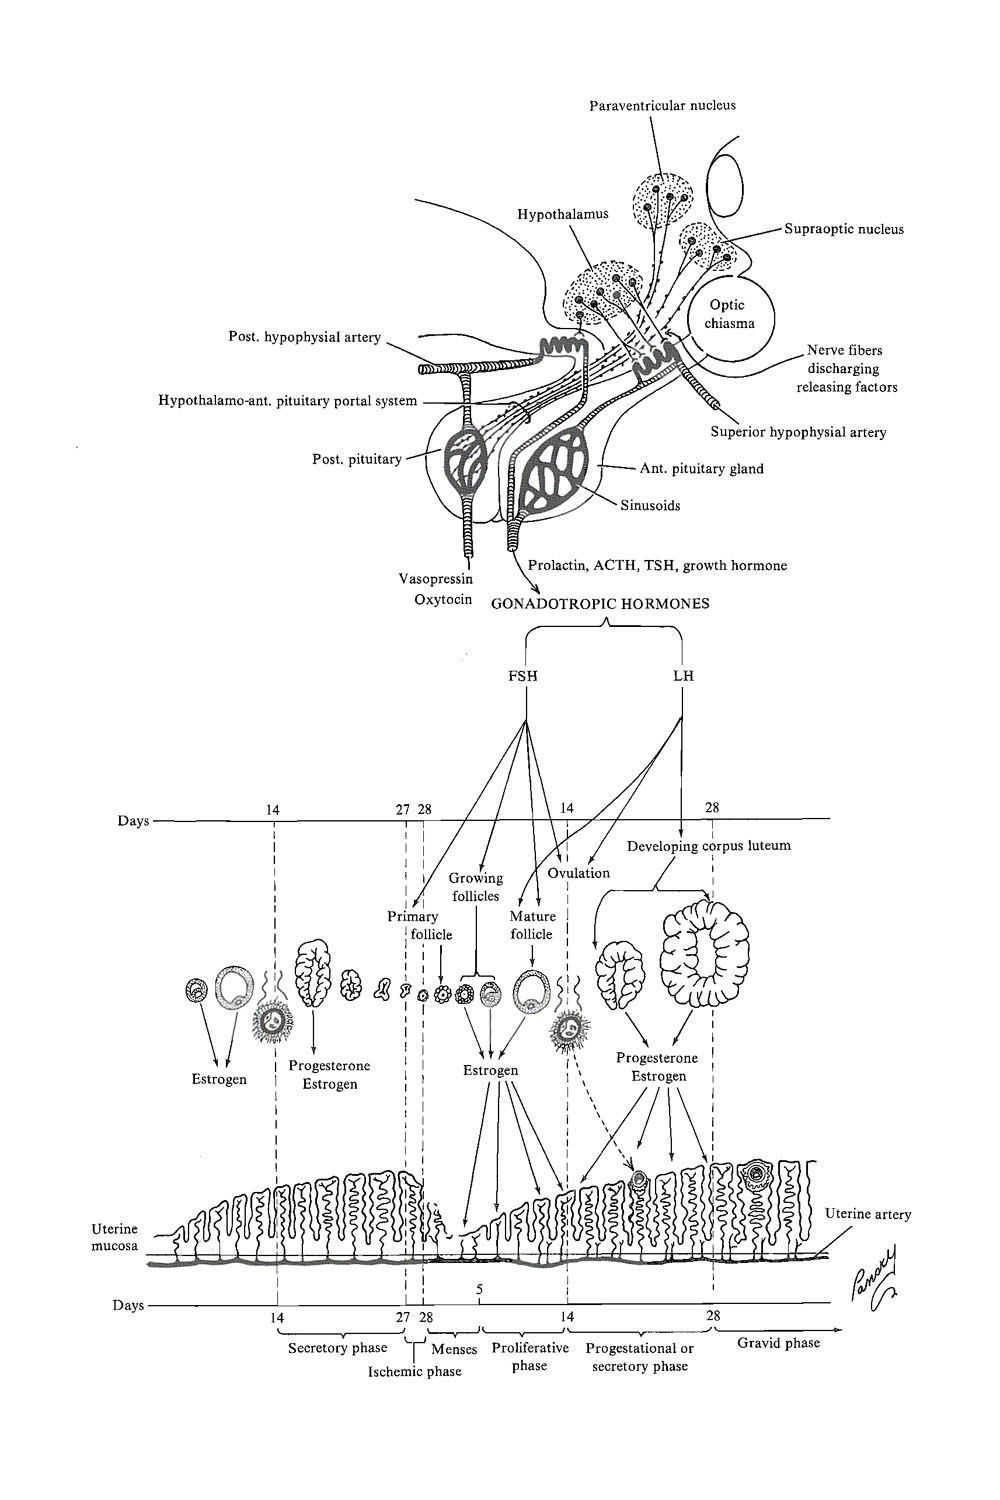 Chapter 13. Implantation and Its Preparation: General